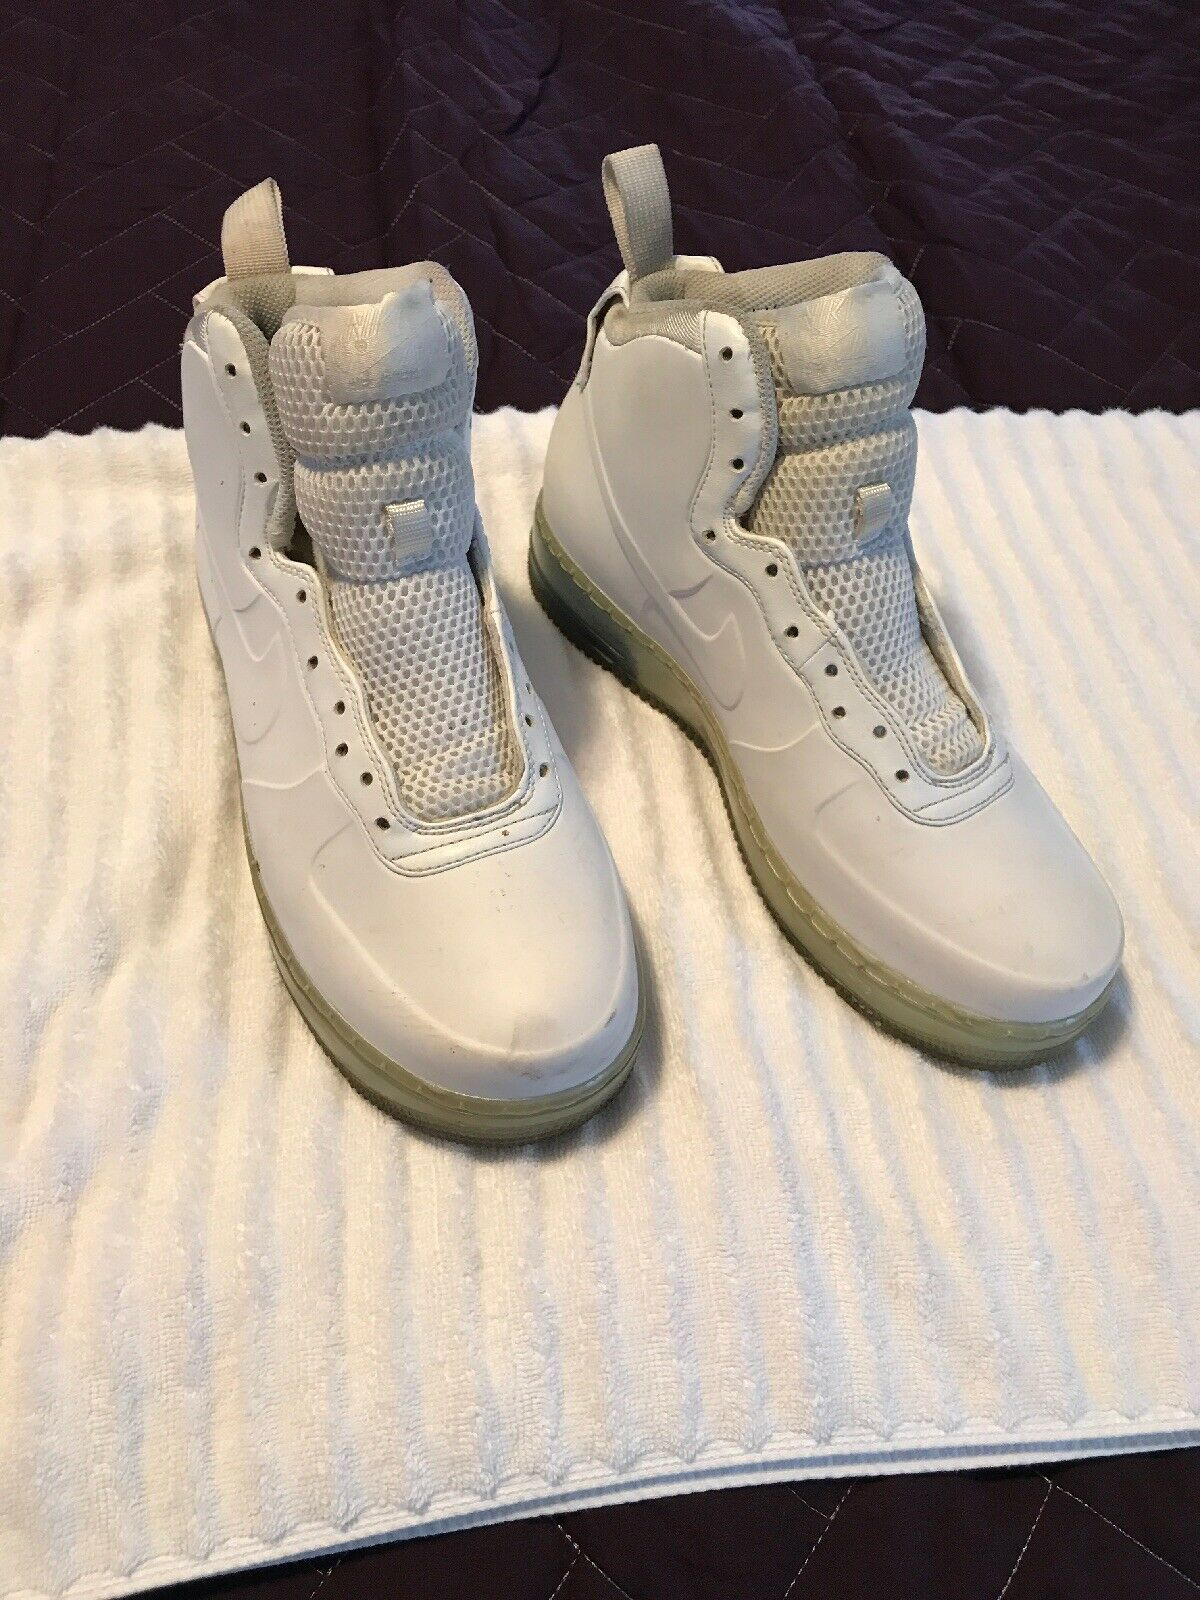 Nike Air Force 1 High Foamposite White Ice bluee 415419-100 Men's Size 7.5